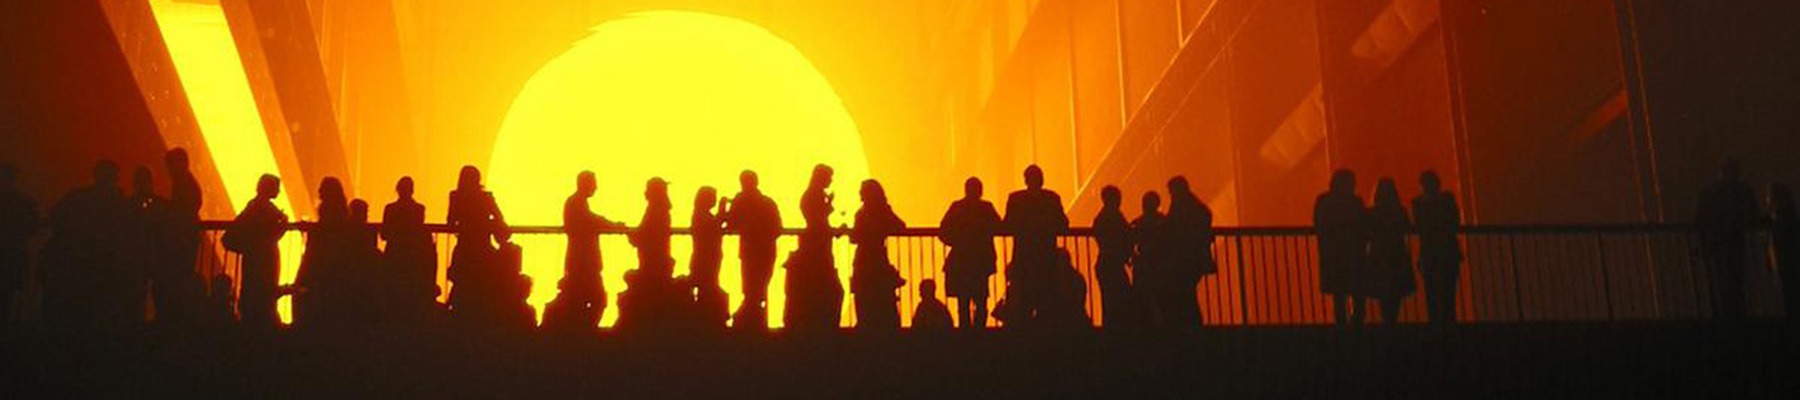 The Weather Project, Olafur Eliasson